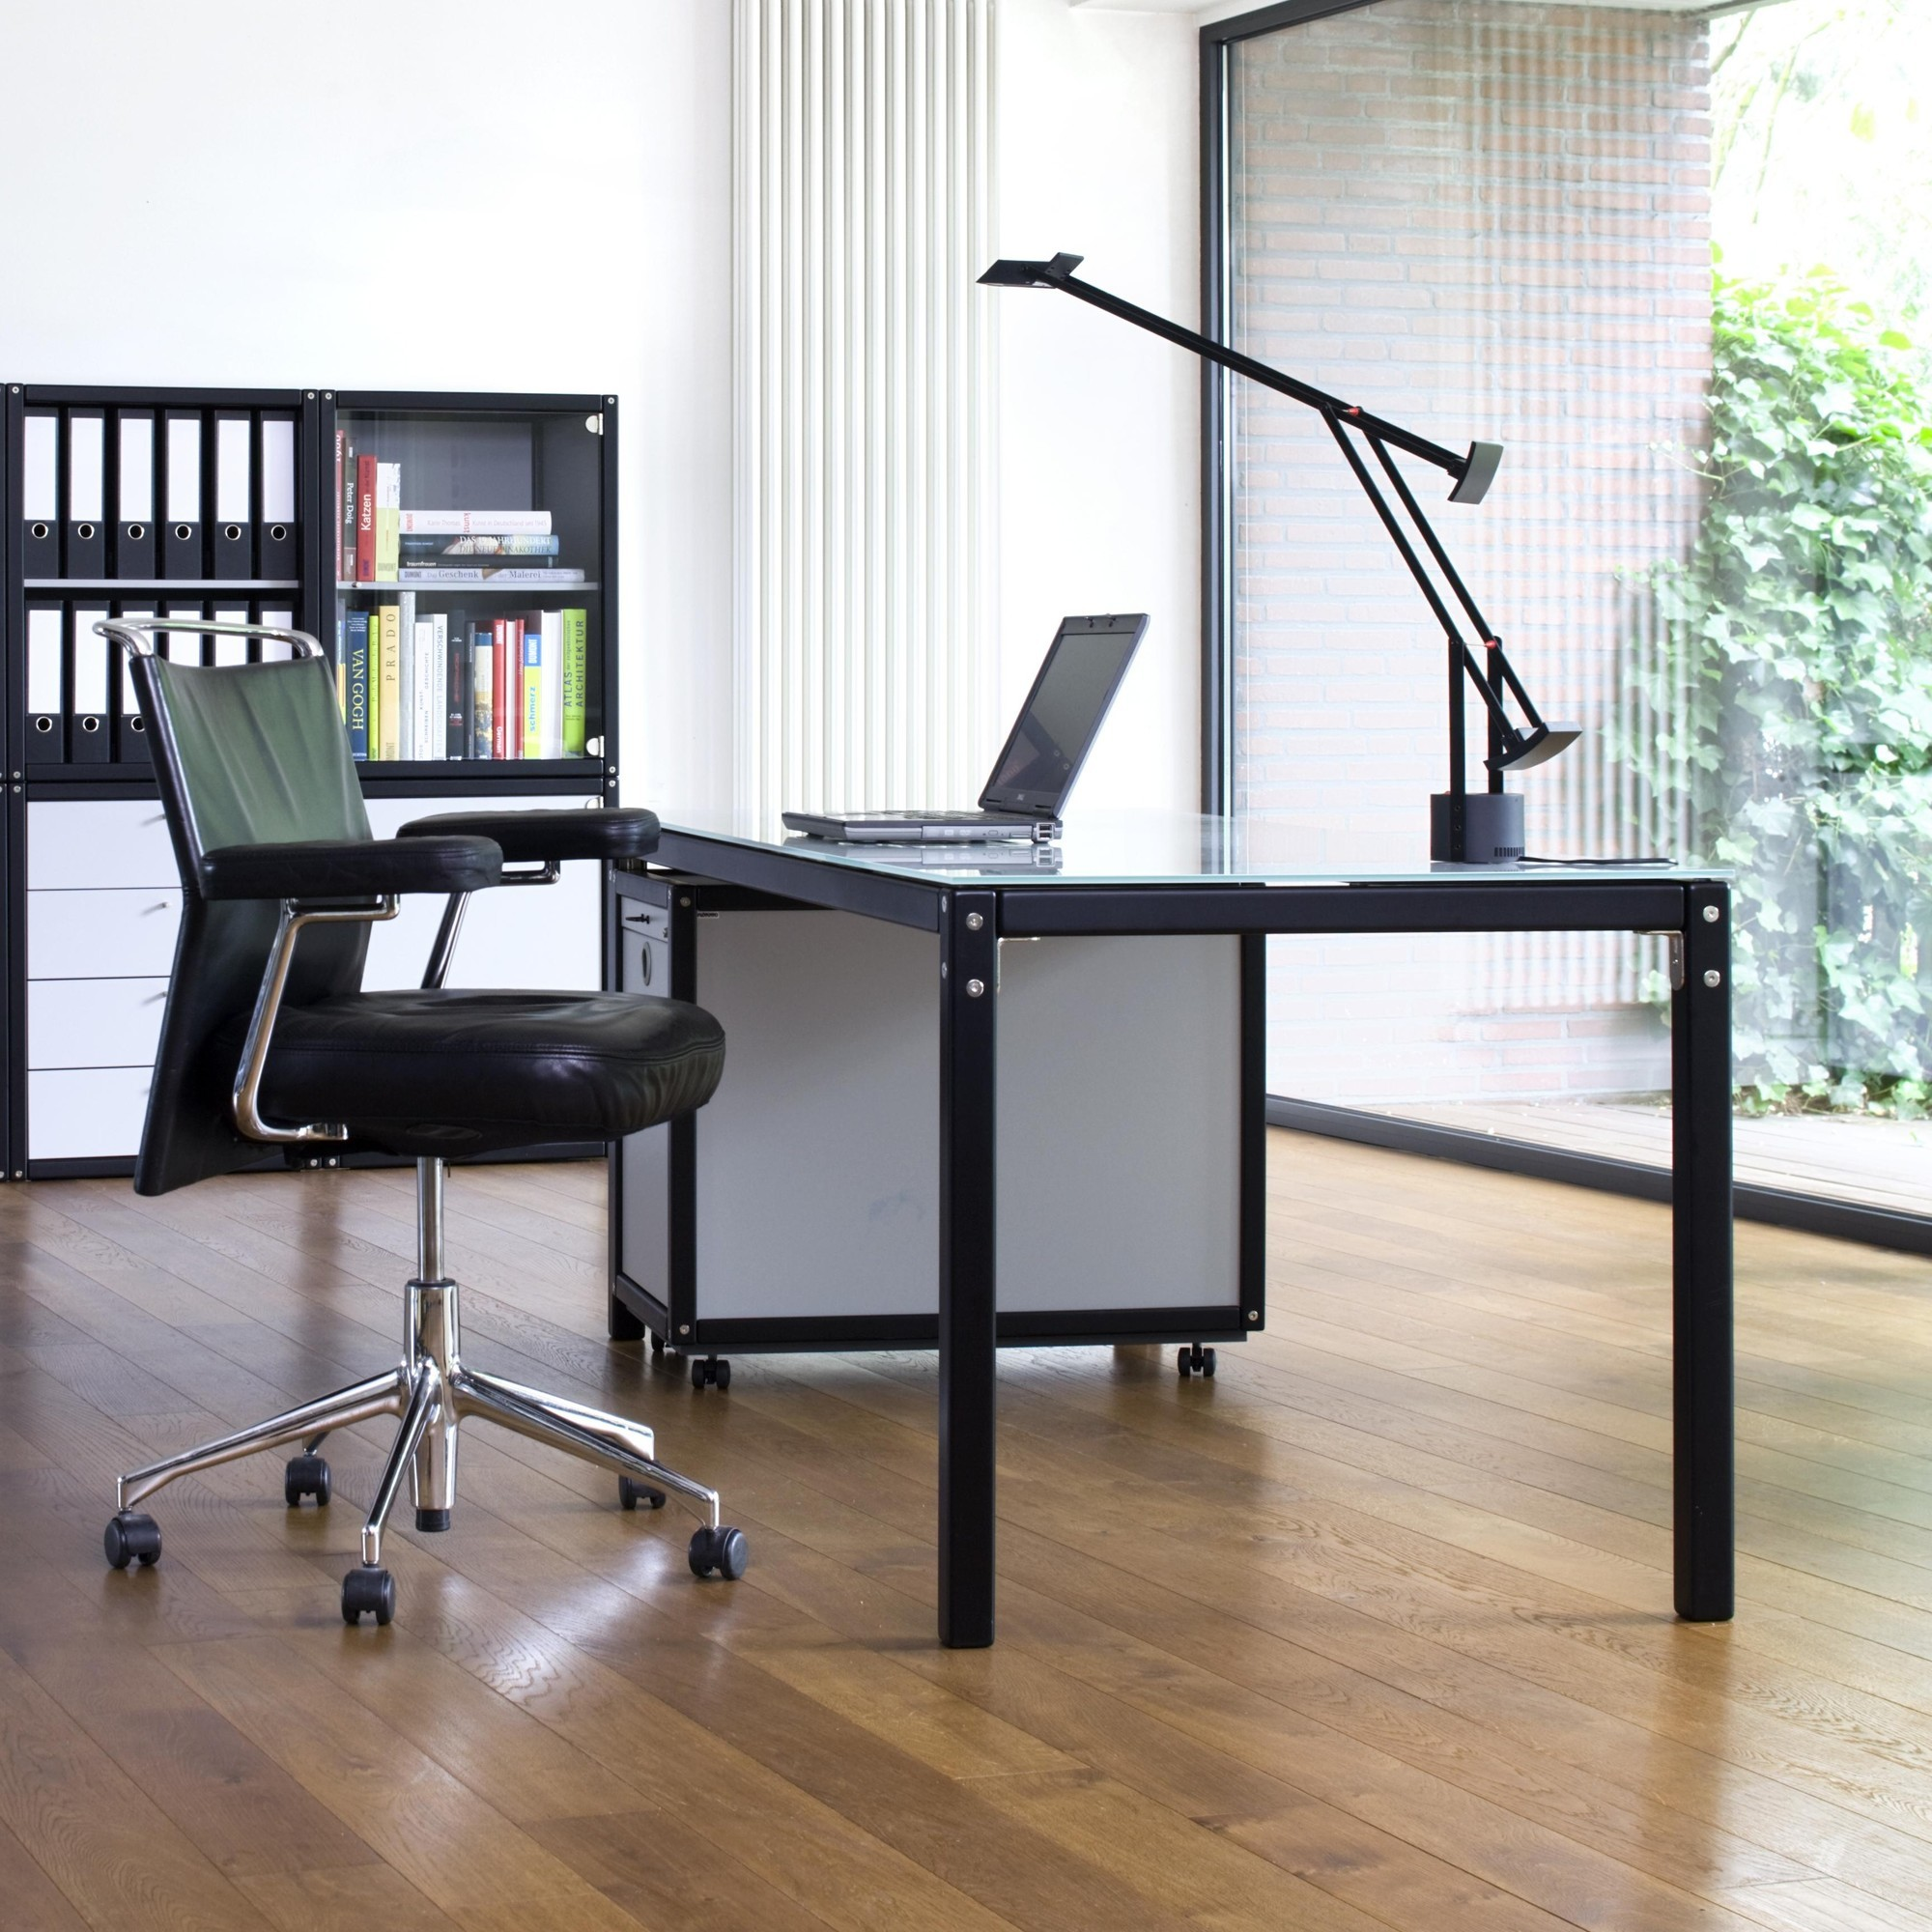 fl totto profilsystem office table ambientedirect. Black Bedroom Furniture Sets. Home Design Ideas